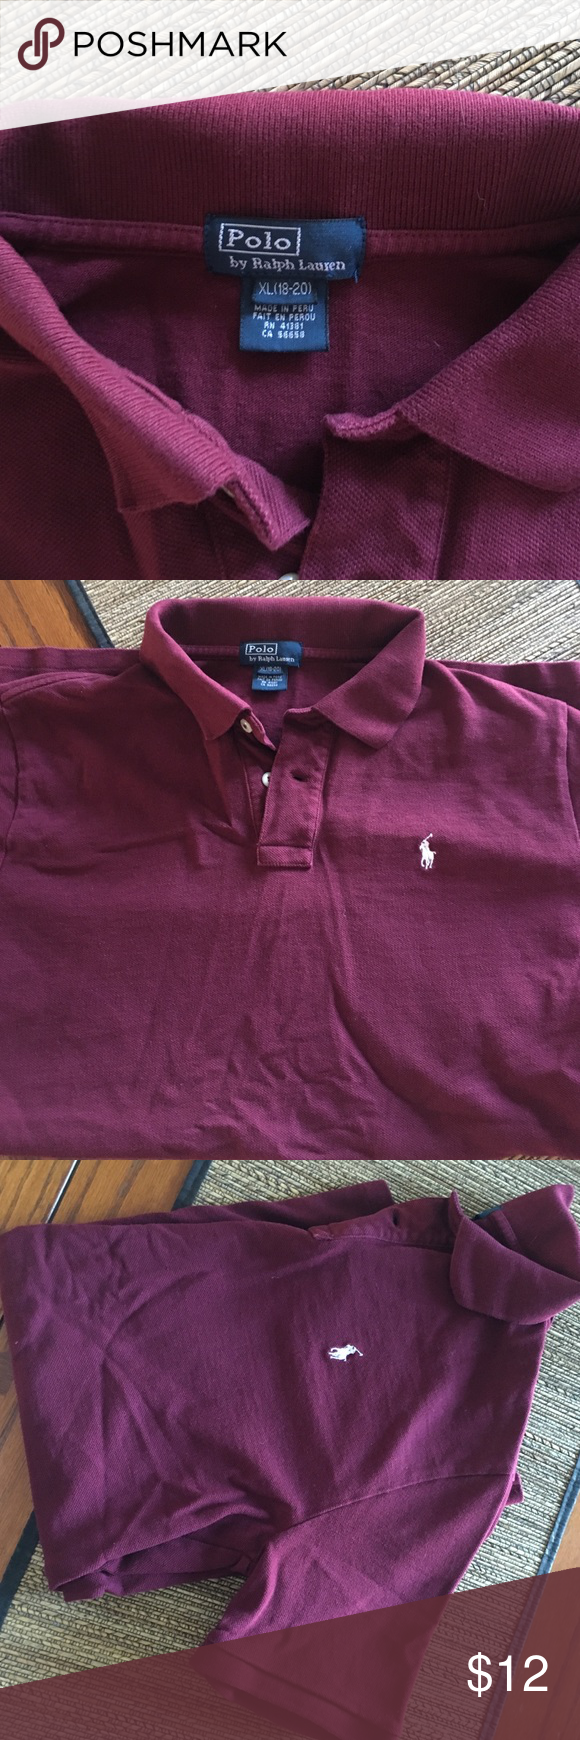 Polo shirt boys XL Polo (Ralph Lauren) shirt boys size XL. Maroon color.  No fading, stains or holes.  Great condition! Polo by Ralph Lauren Shirts & Tops Polos